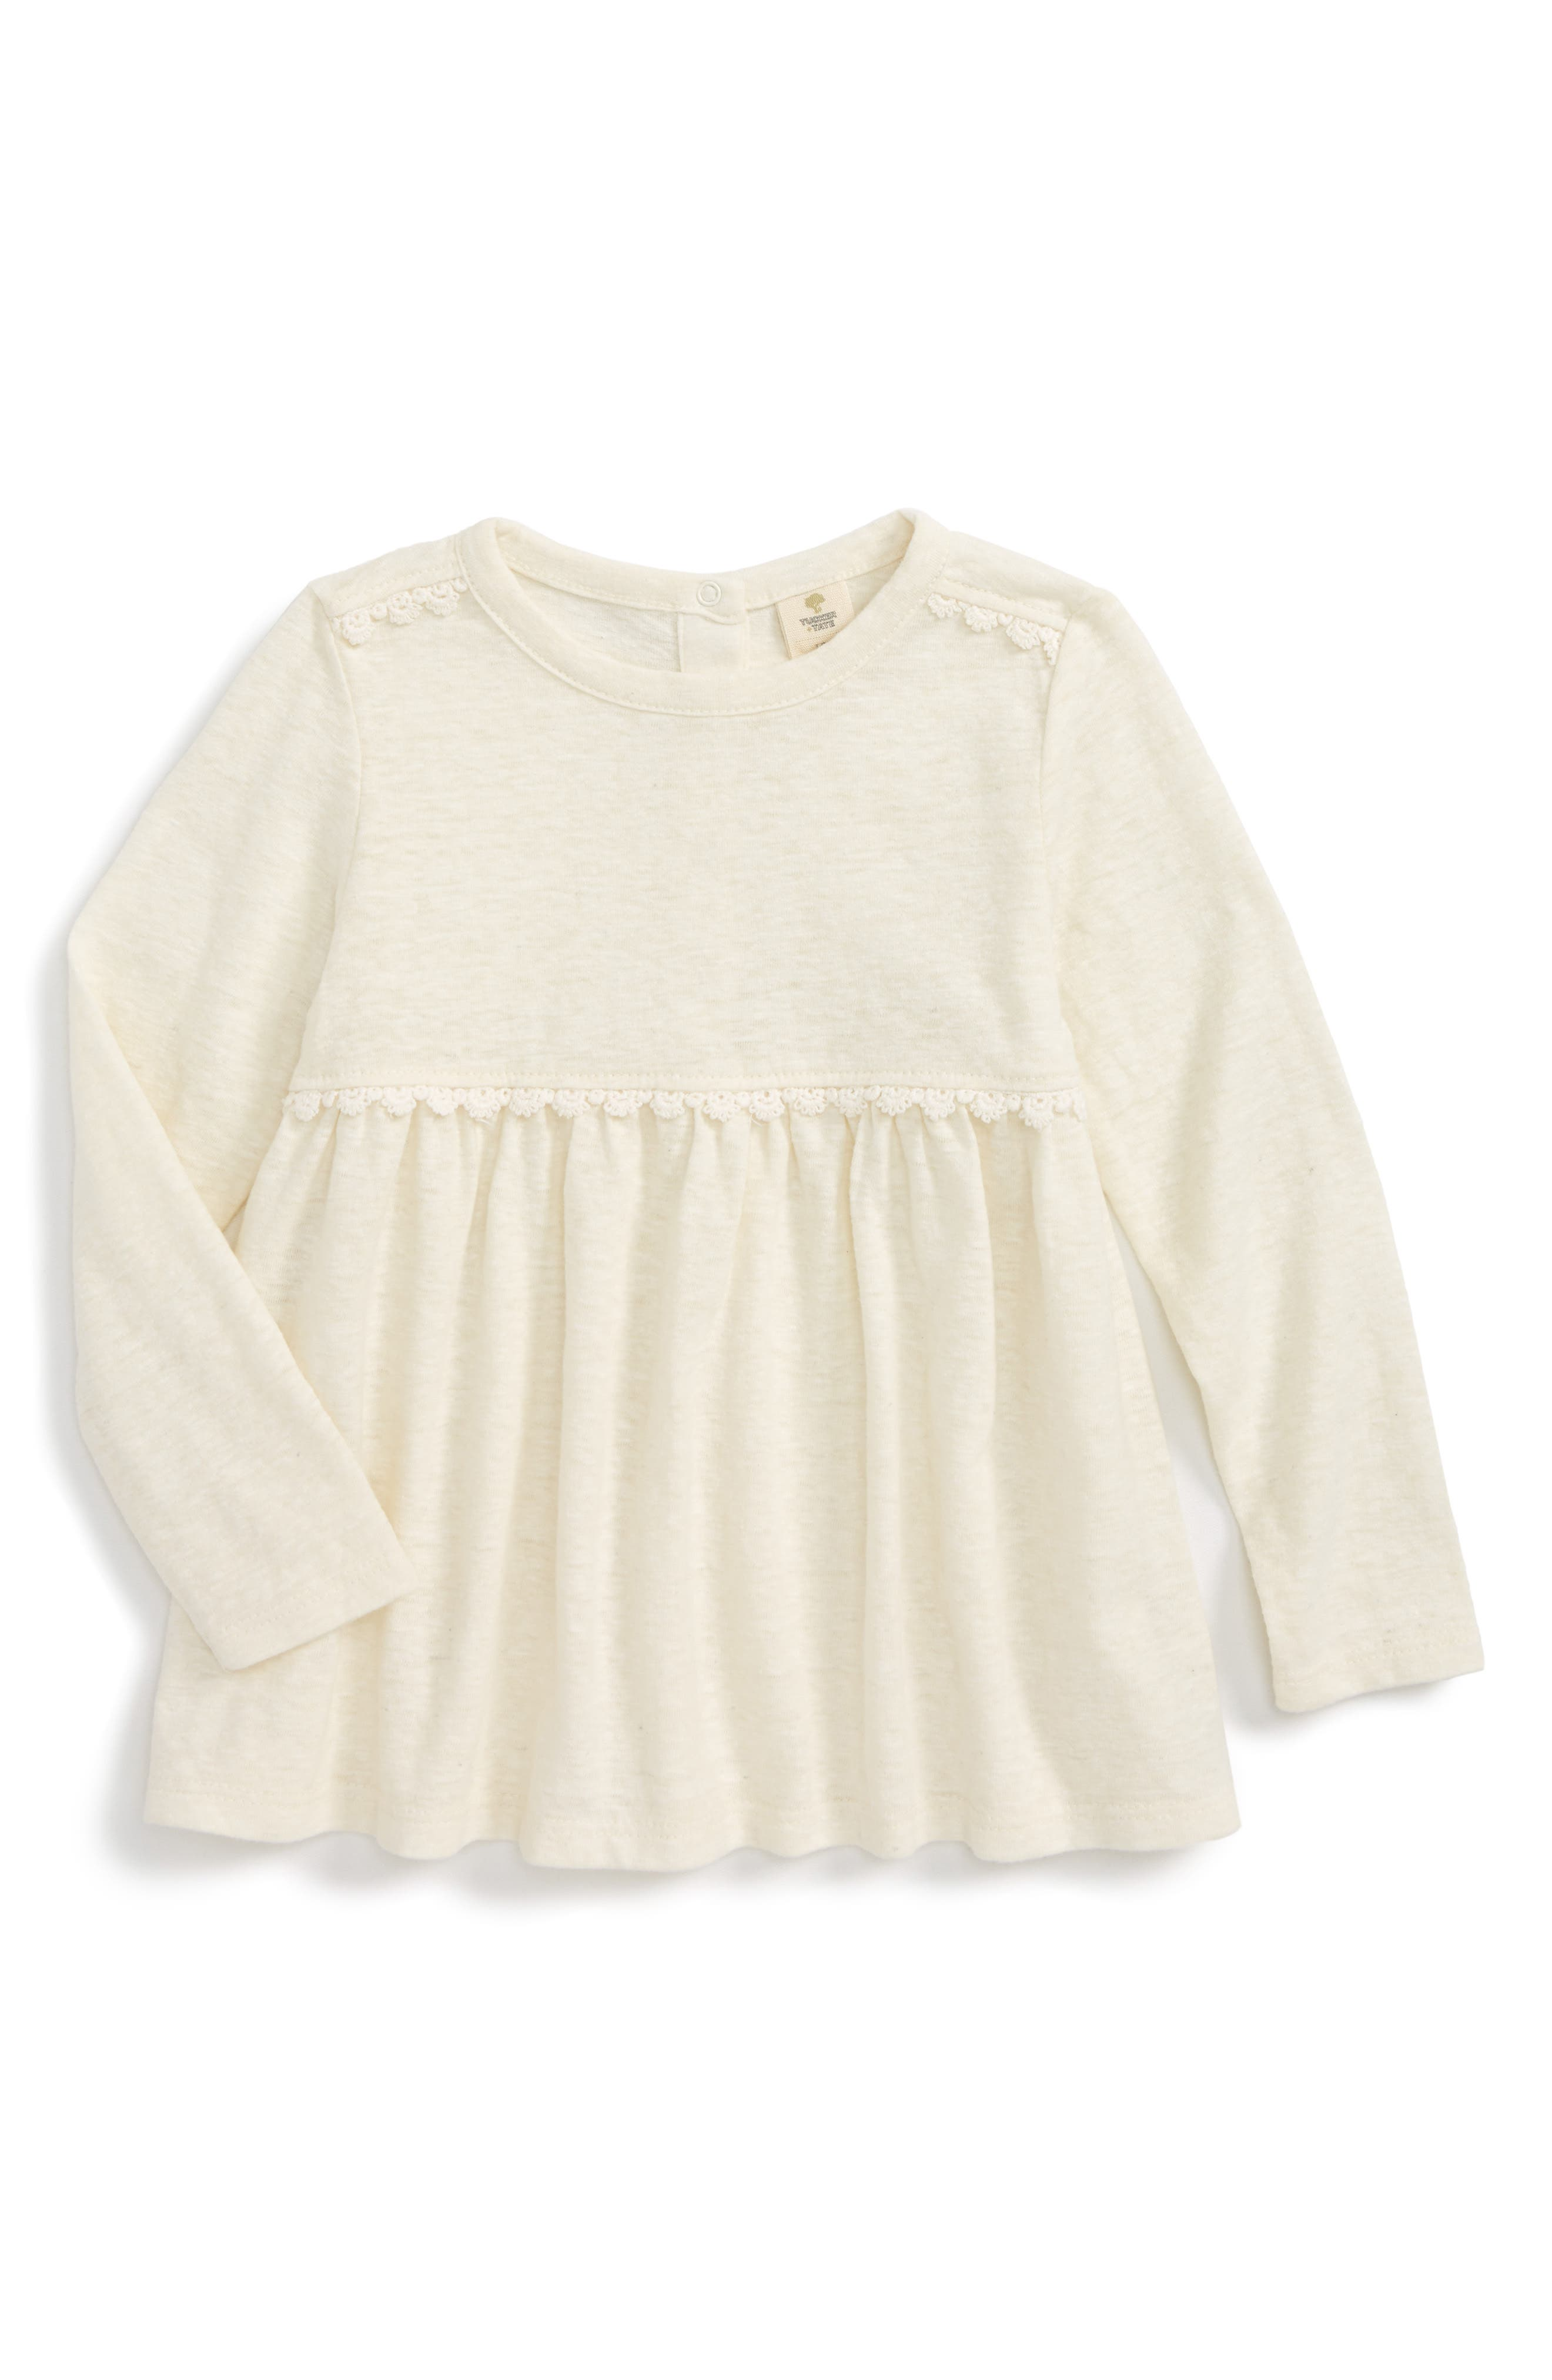 Tucker + Tate Lace Trim Tunic (Baby Girls)